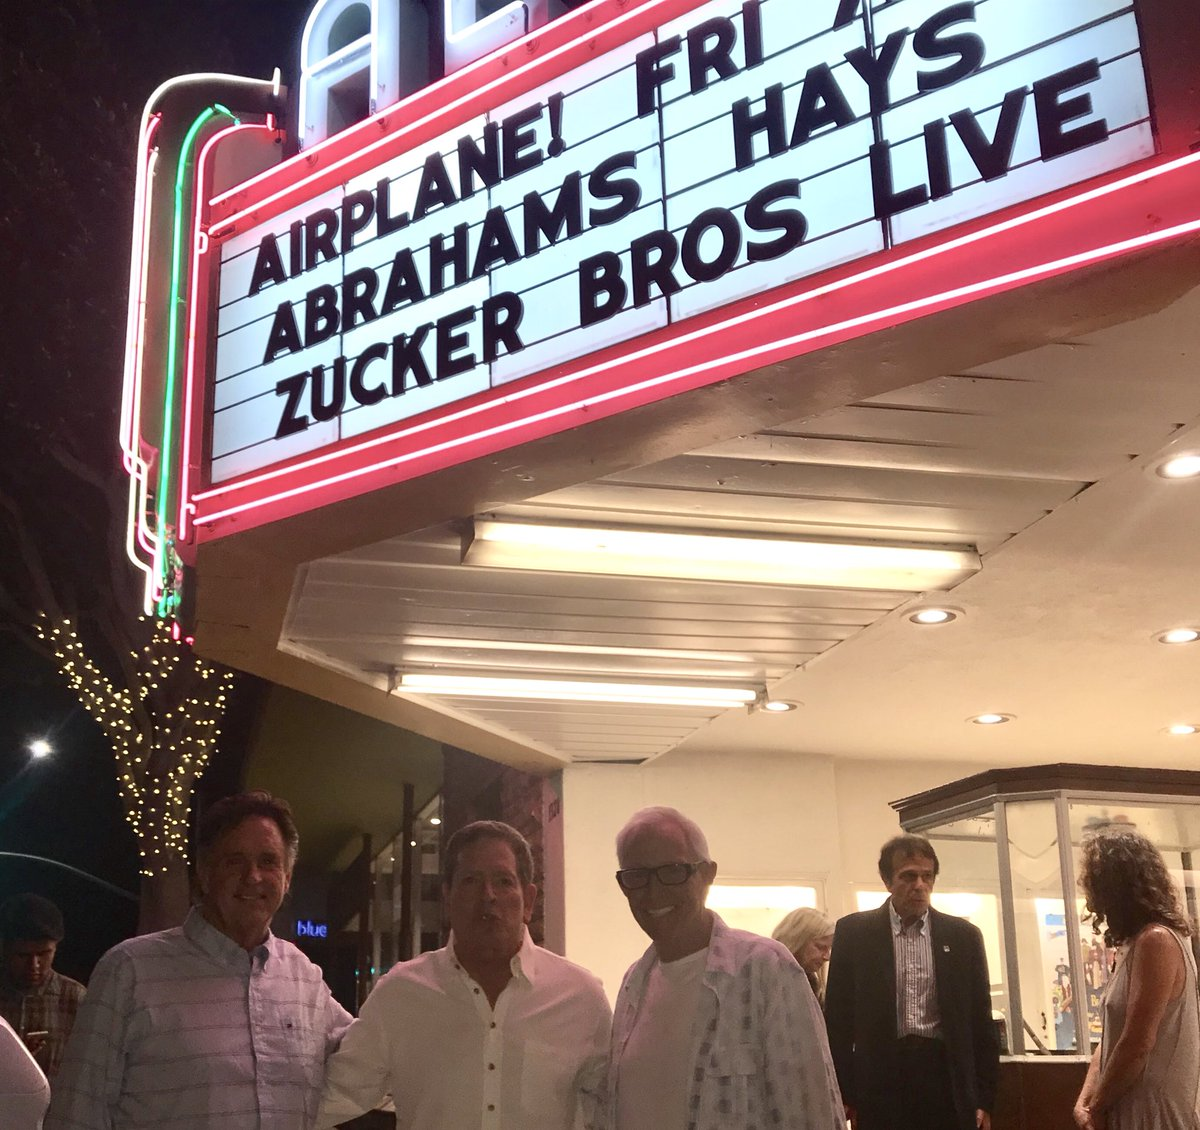 Robert Hays On Twitter Great Evening At The Wonderful Aero Theater In Santa Monica With David Zucker And Jim Abrahams Fun Q A Afterwards